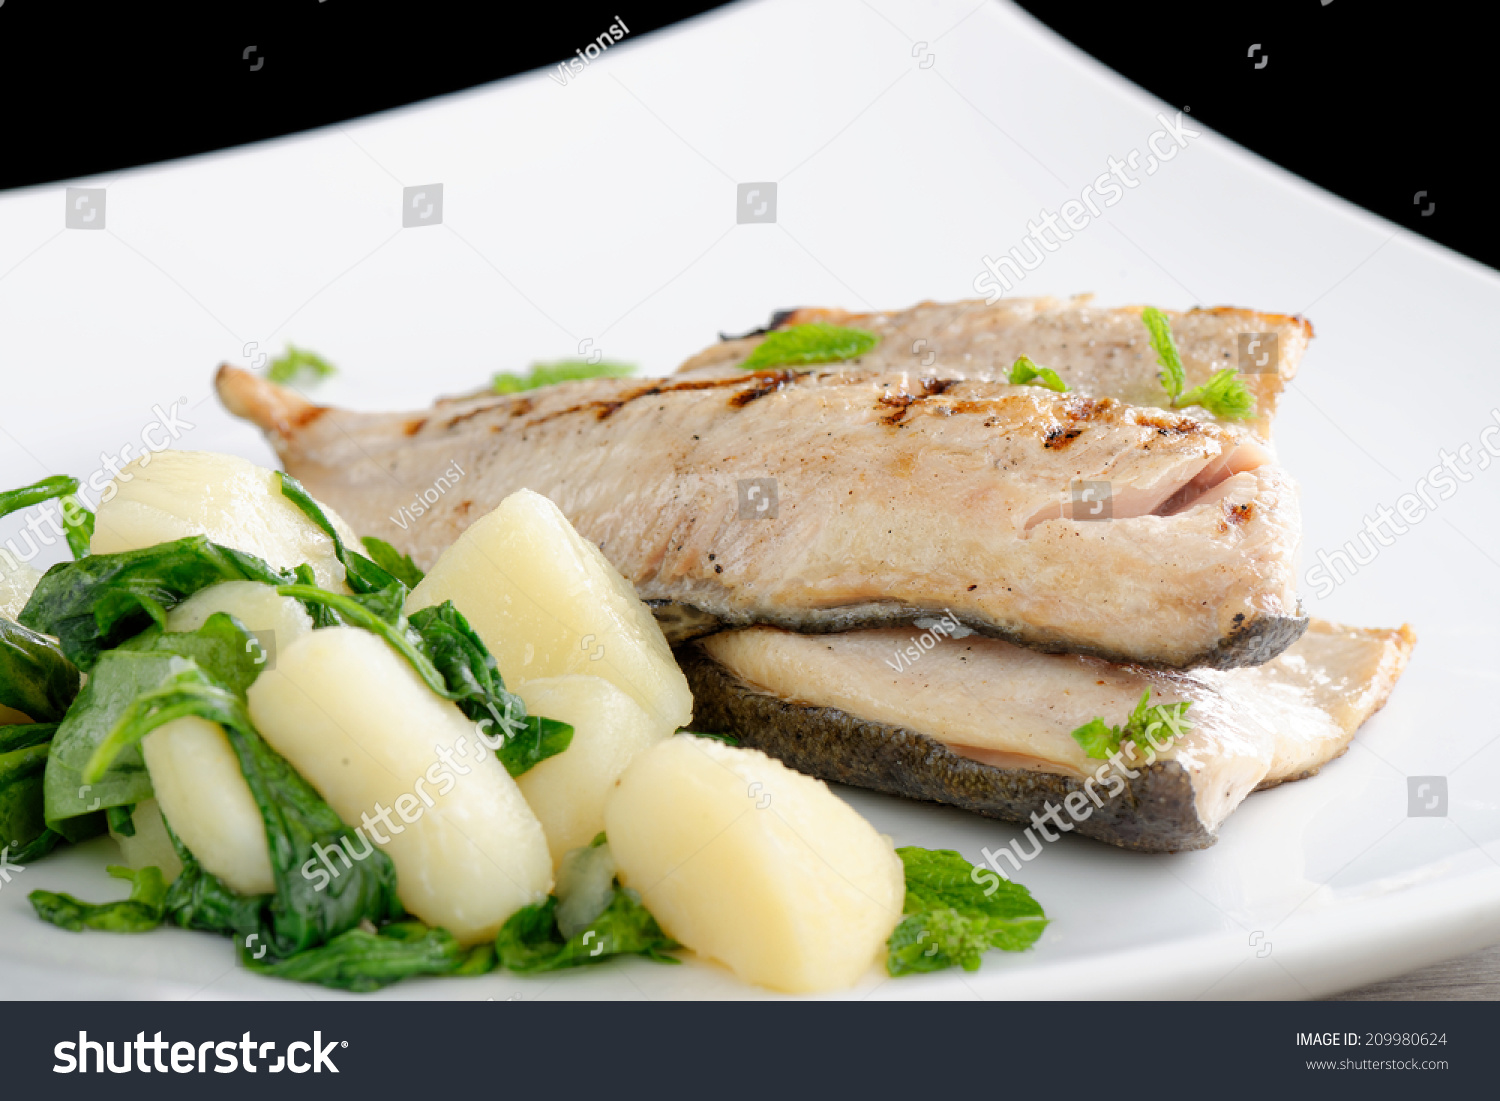 Grilled white fish fillets potato spinach stock photo for Grilled white fish recipes